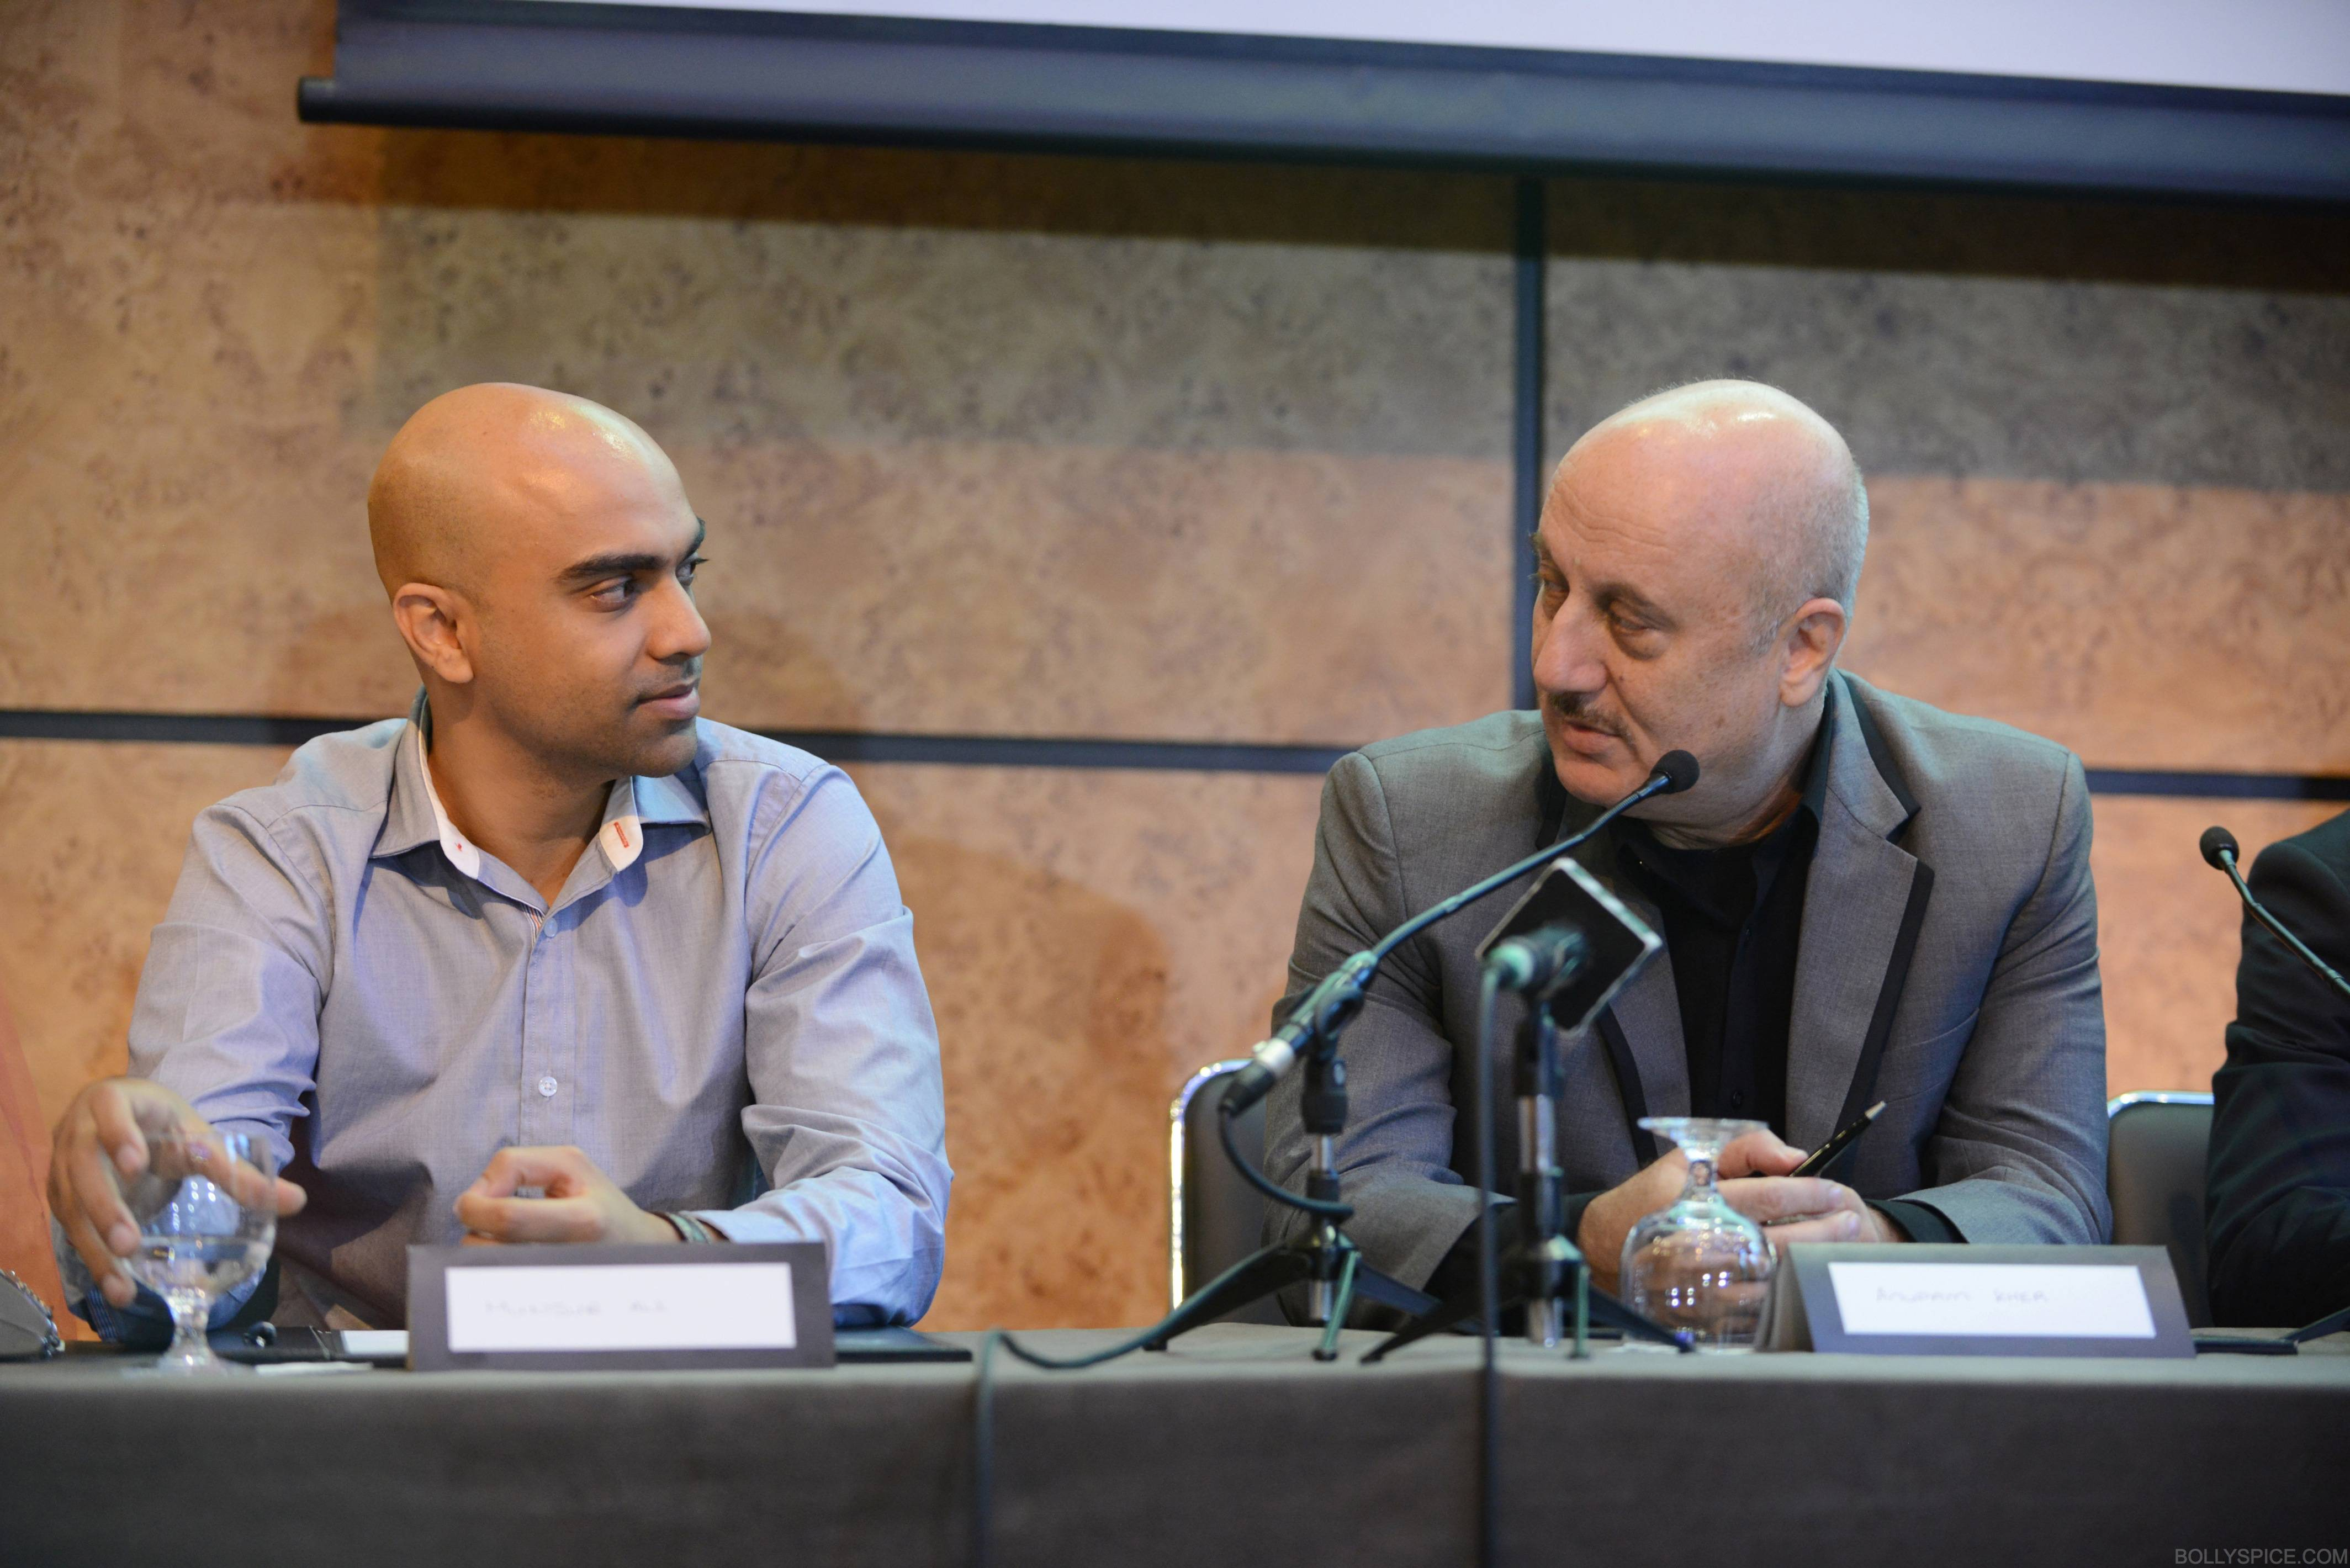 ShongramPC06 SAI Anupam Kher attends London press conference for Shongram